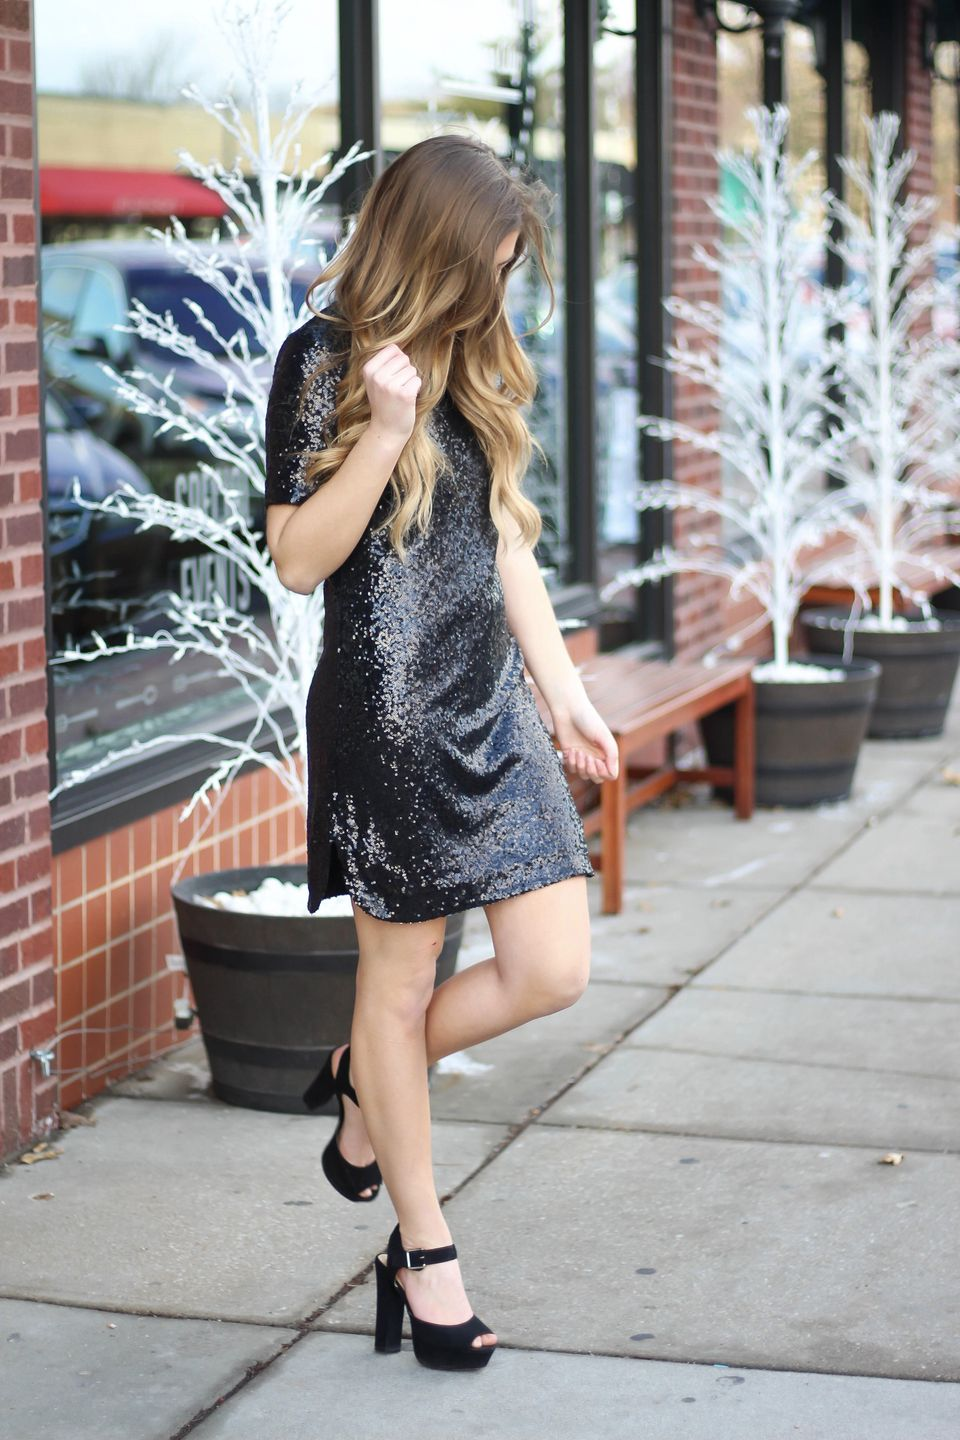 Sequin dress for new year eve party and night out 67